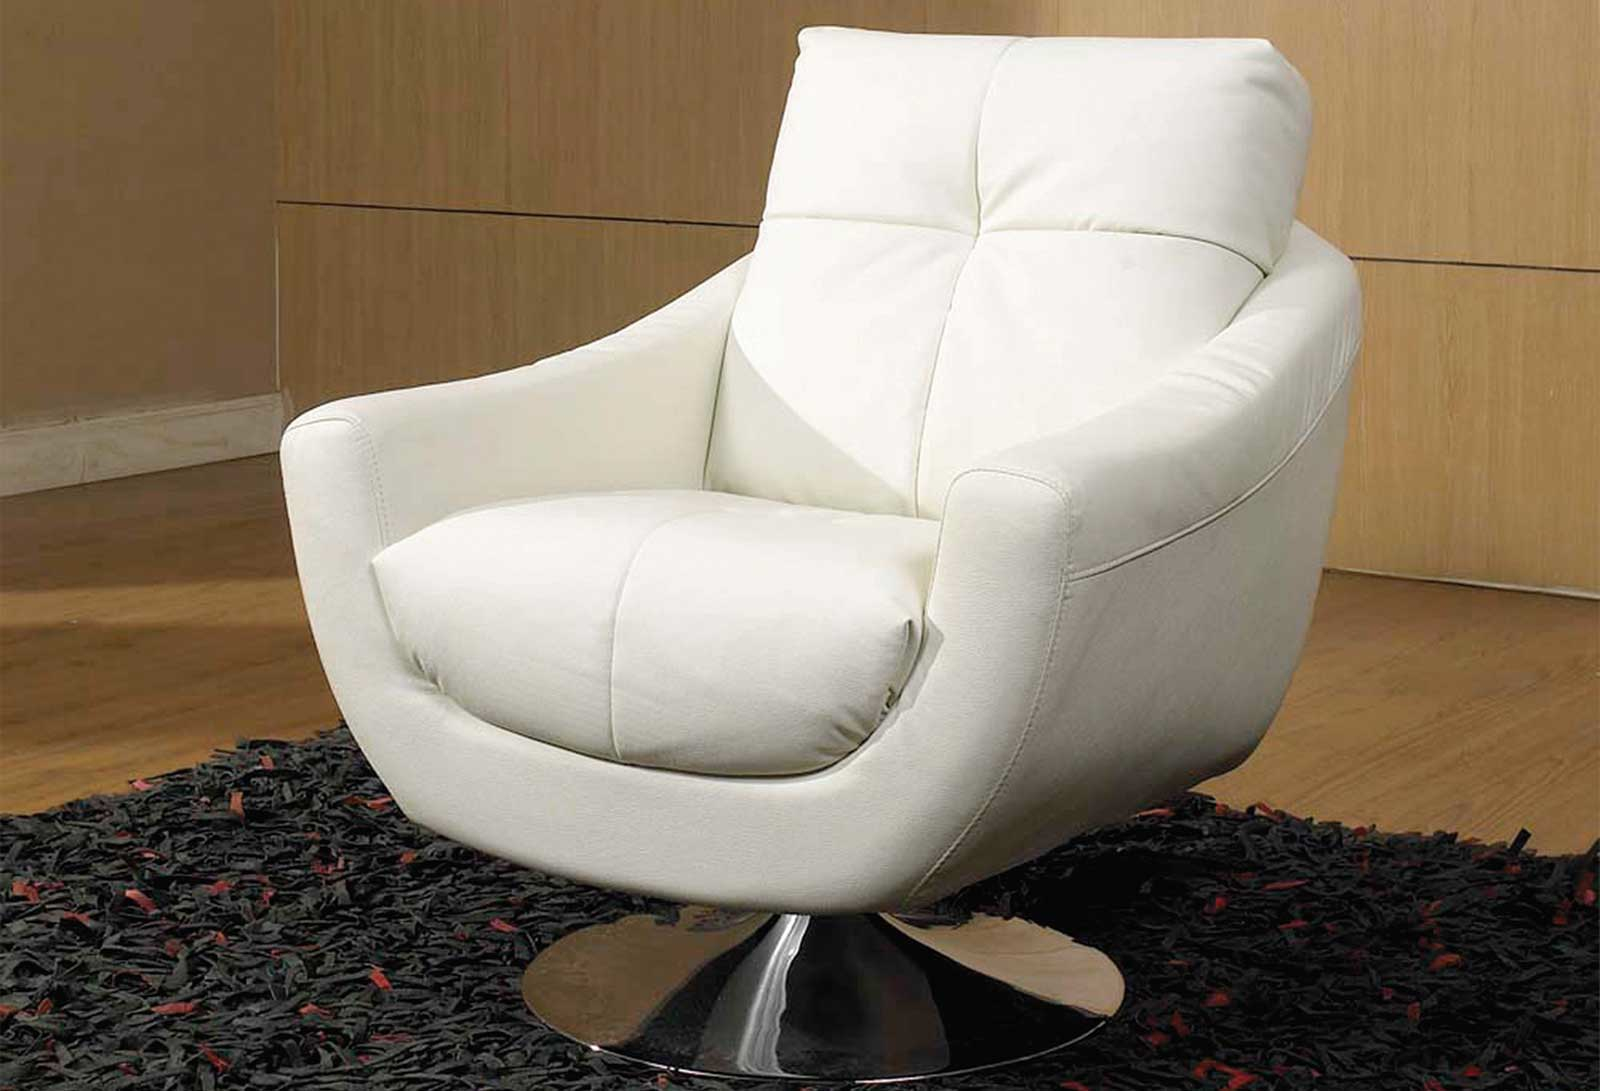 Swivel Chairs For Living Room Freshsdg